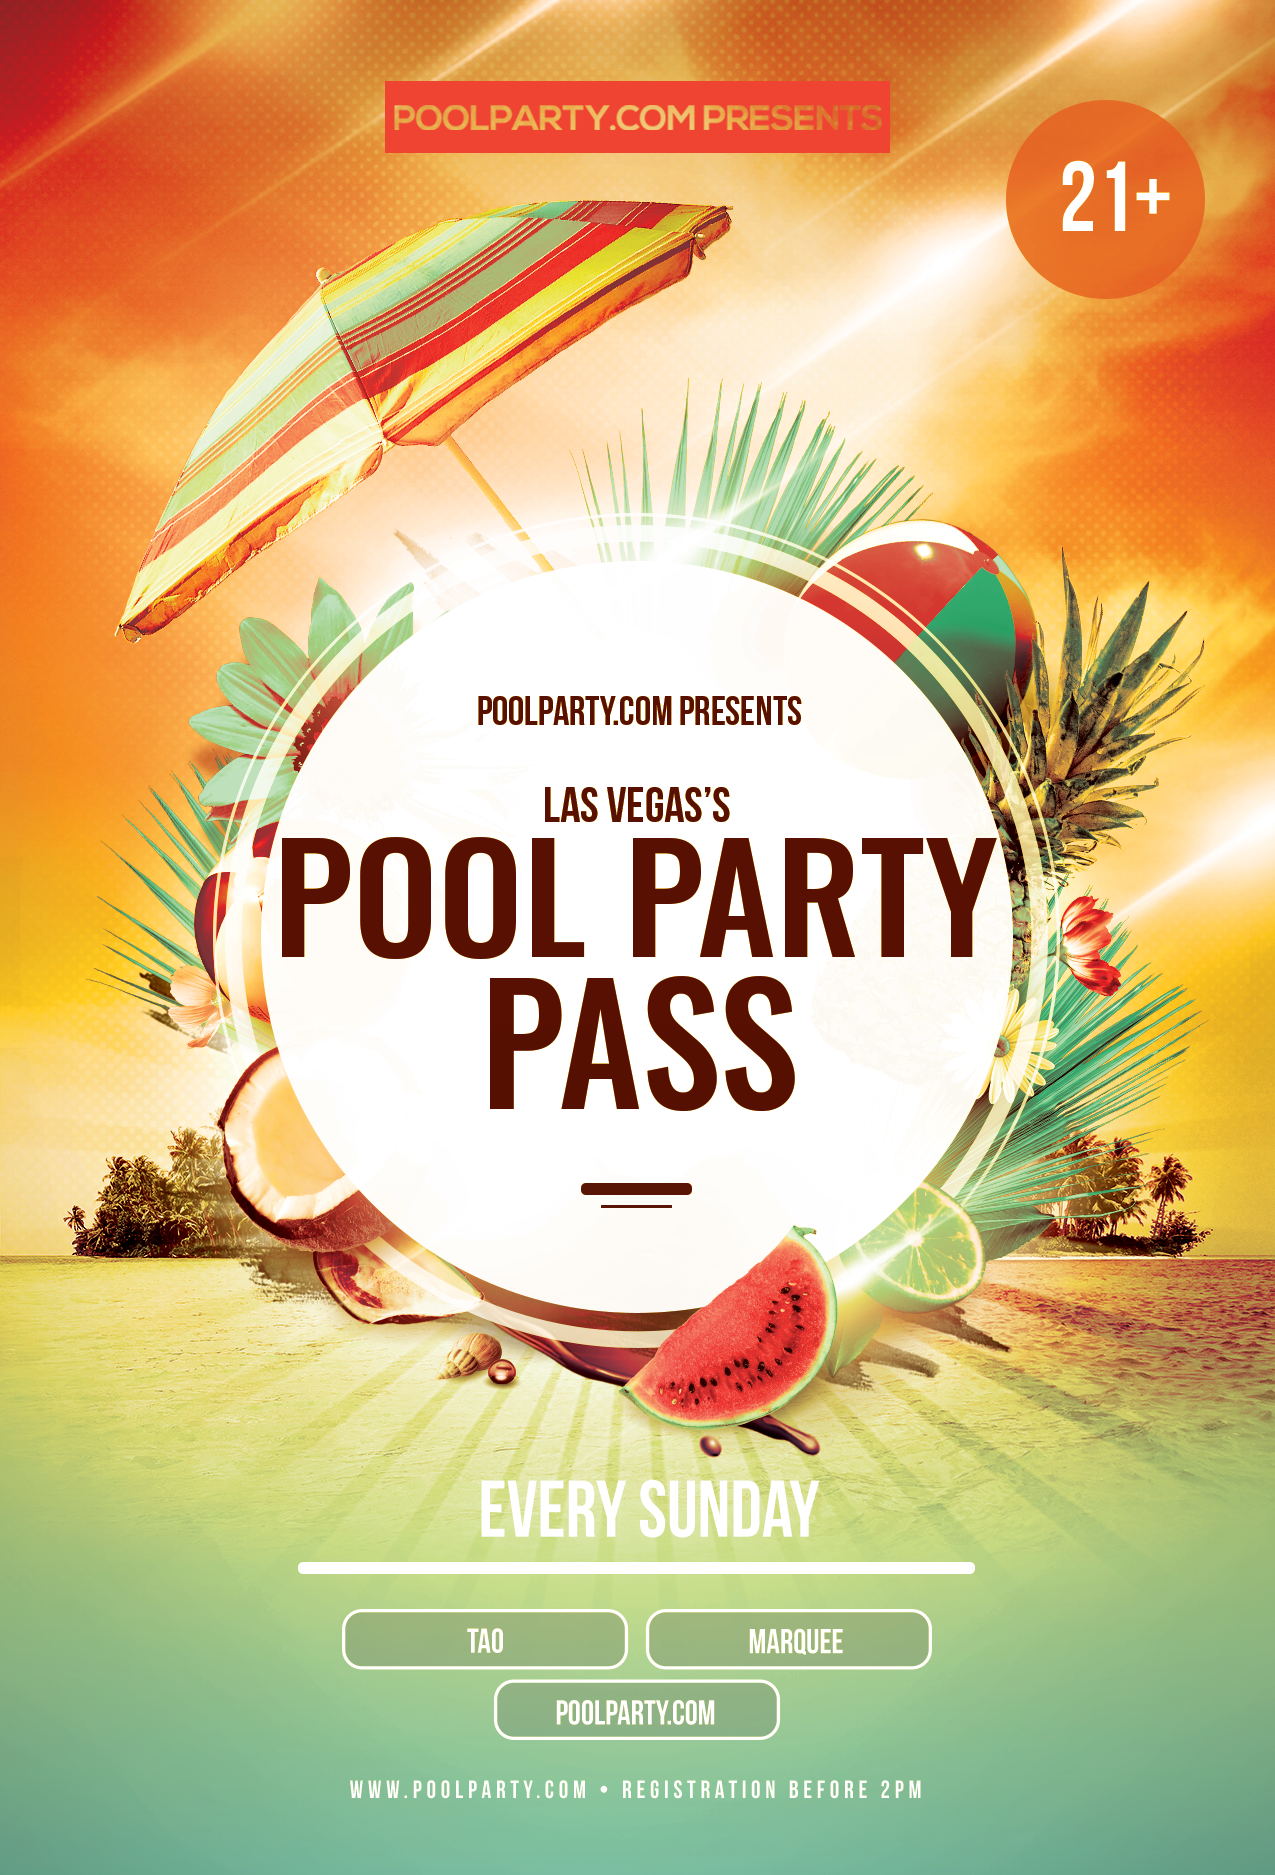 Sunday's Pool Party Pass (June 7th 2020)